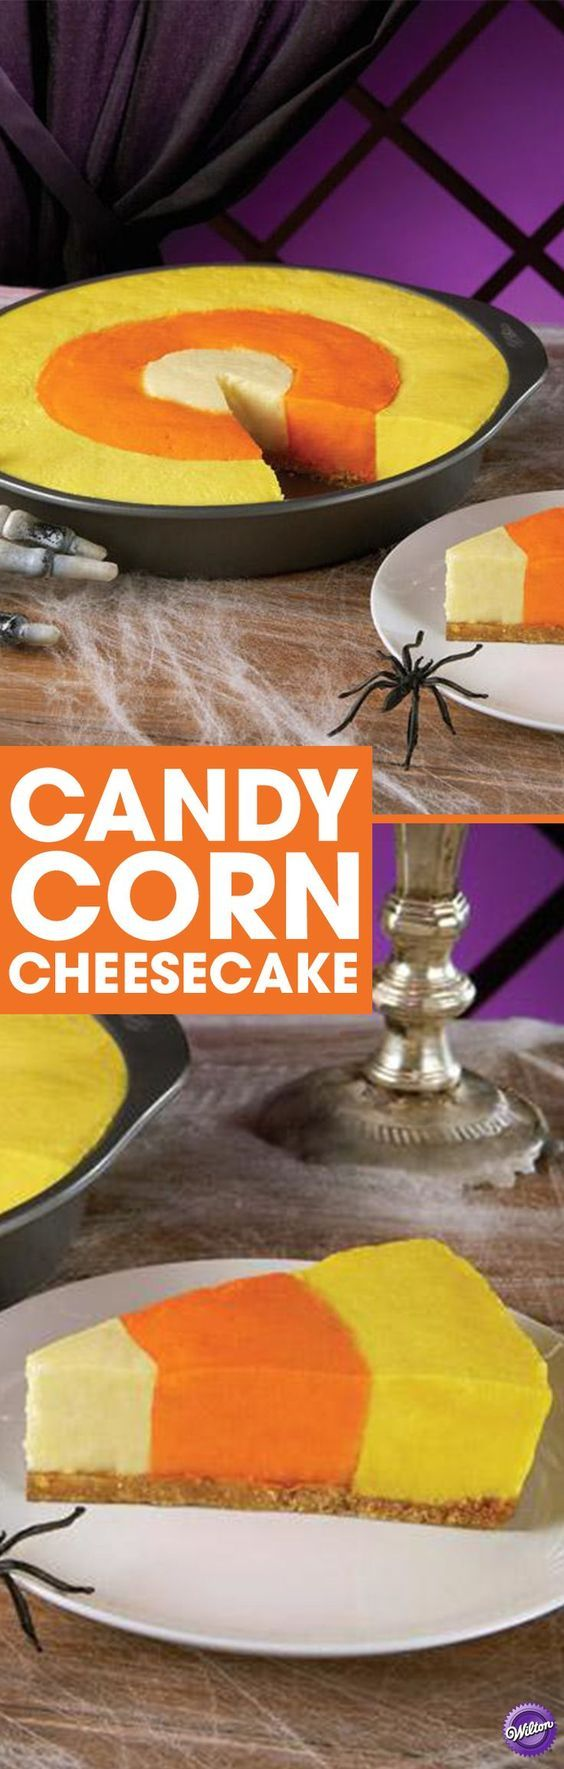 Candy Corn Cheesecake Recipe - It's the best of both worlds. A delicious cheesecake made to resemble Halloween candy corn. The magic begins with the Wilton Checkerboard Cake Pan. It allows three different color batters to be baked at the same time. The re (baking recipes cupcakes shape)